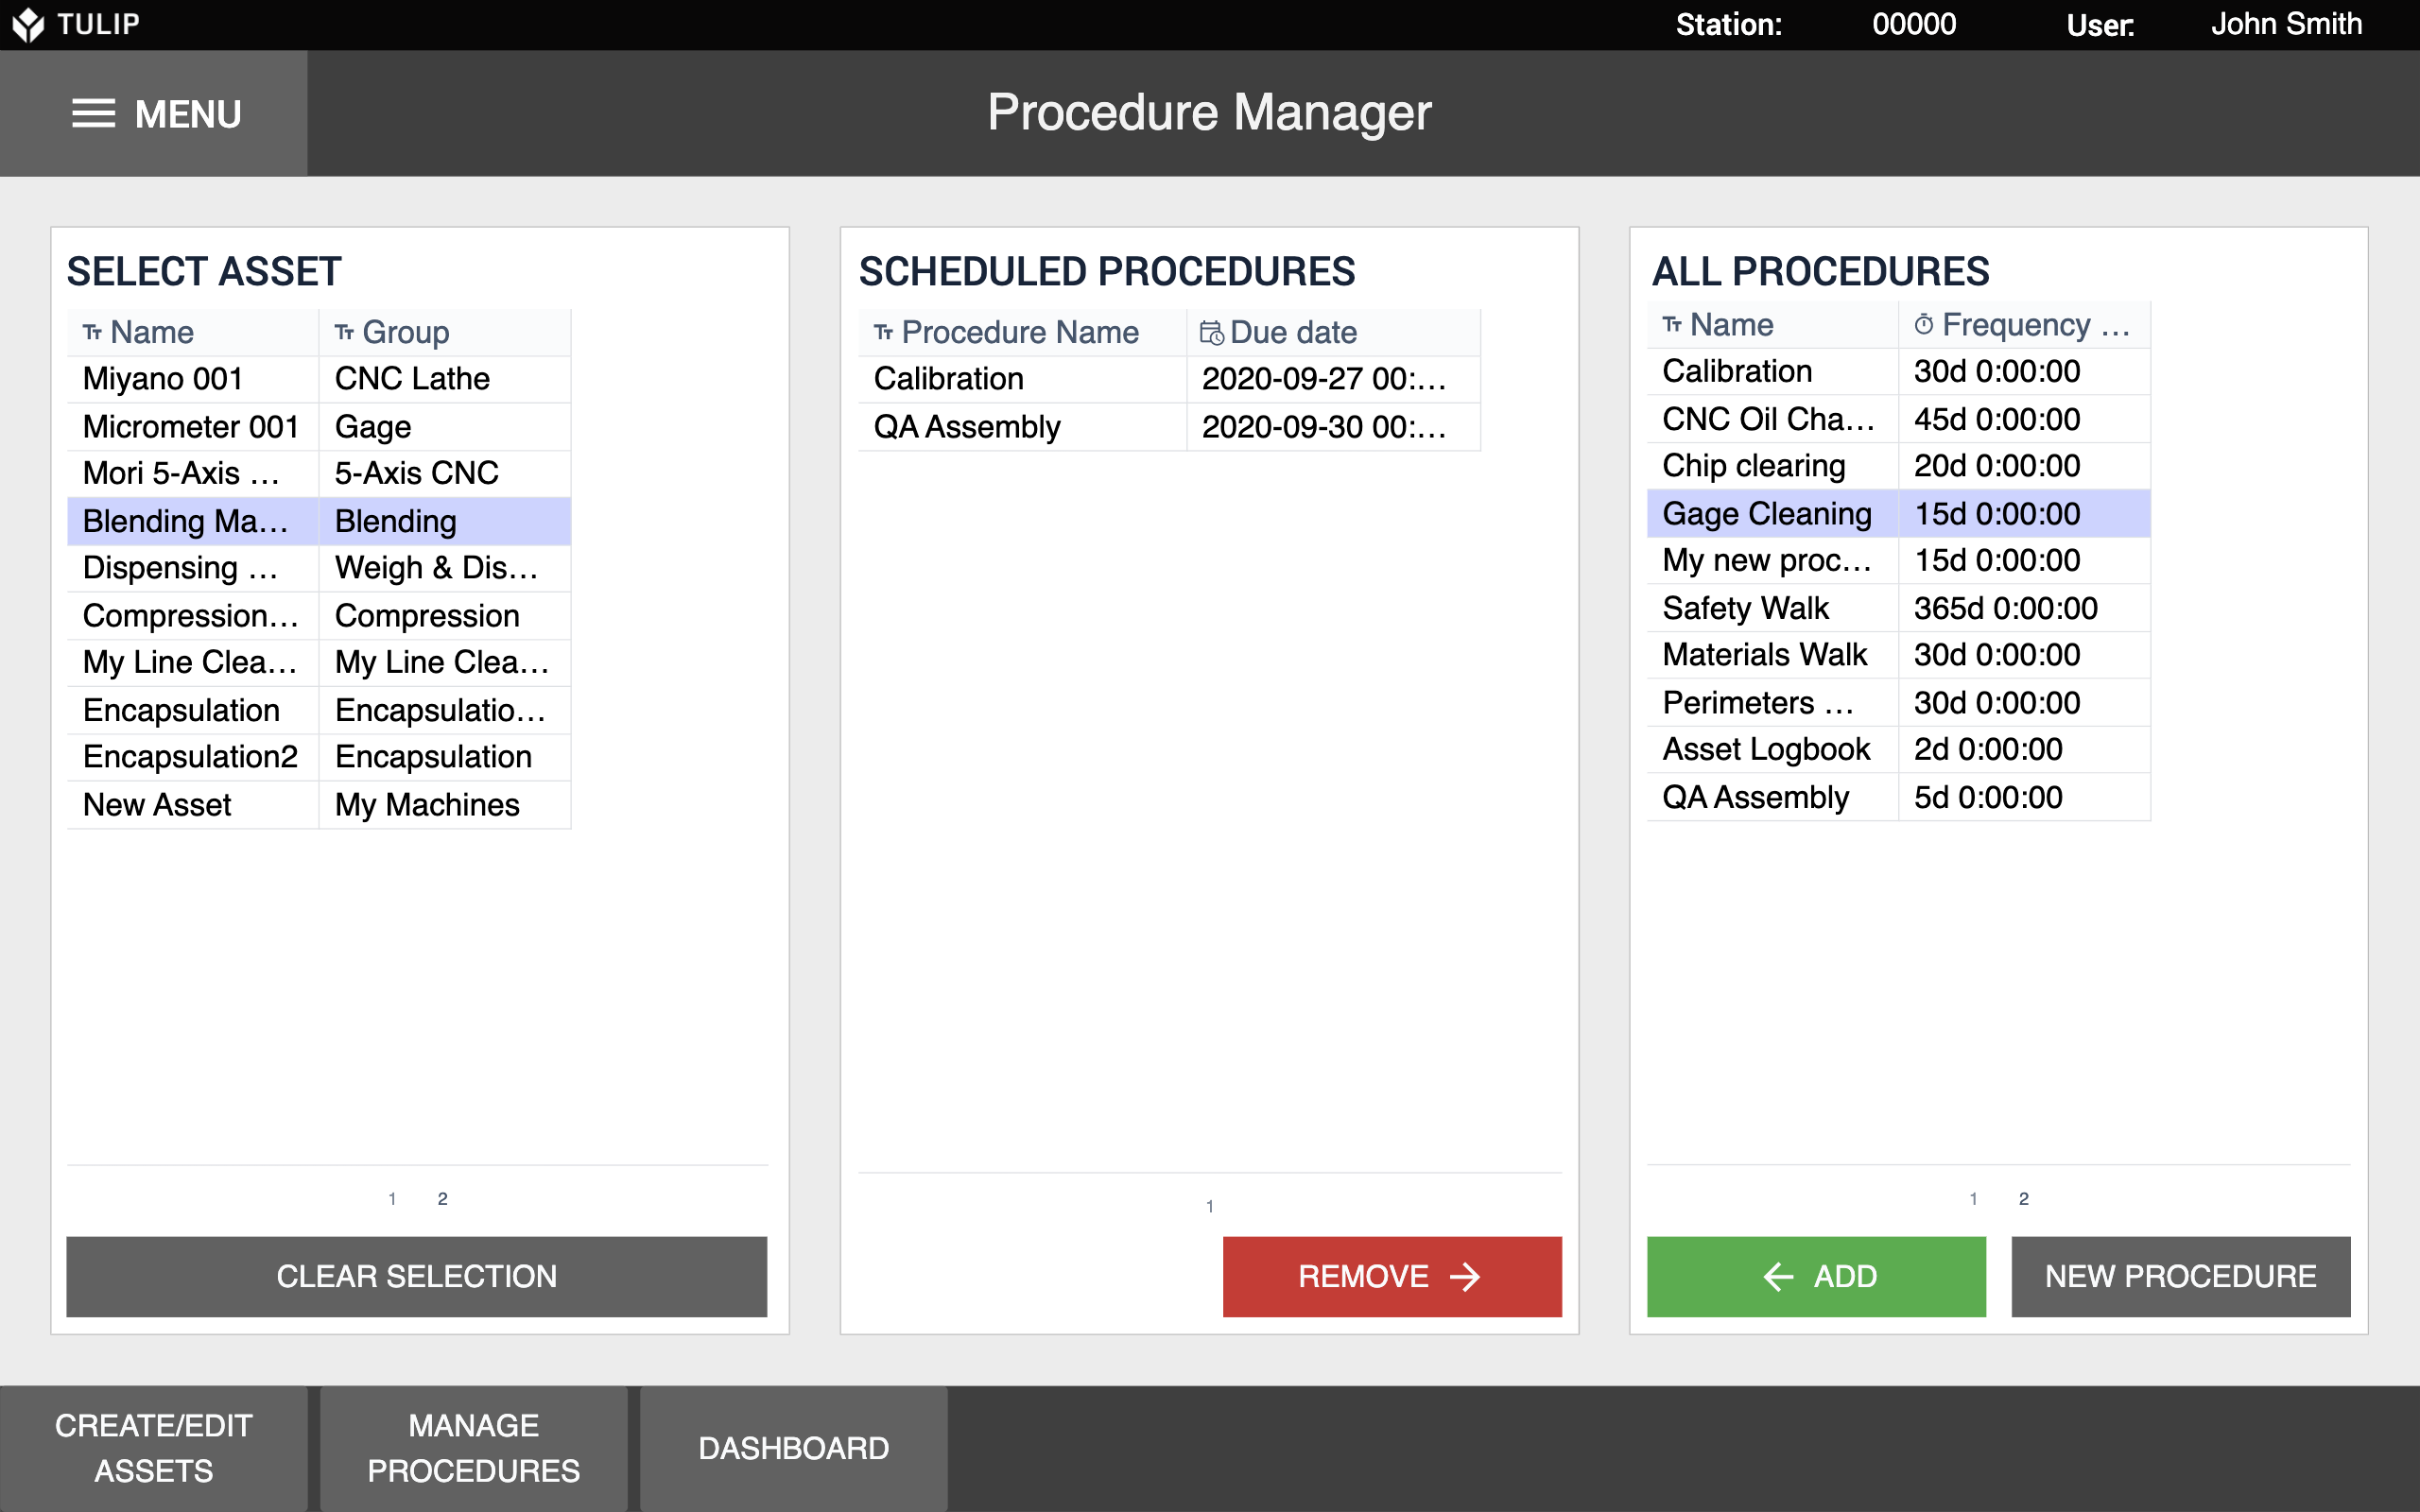 Image of Total Productive Maintenance Procedure Manager app